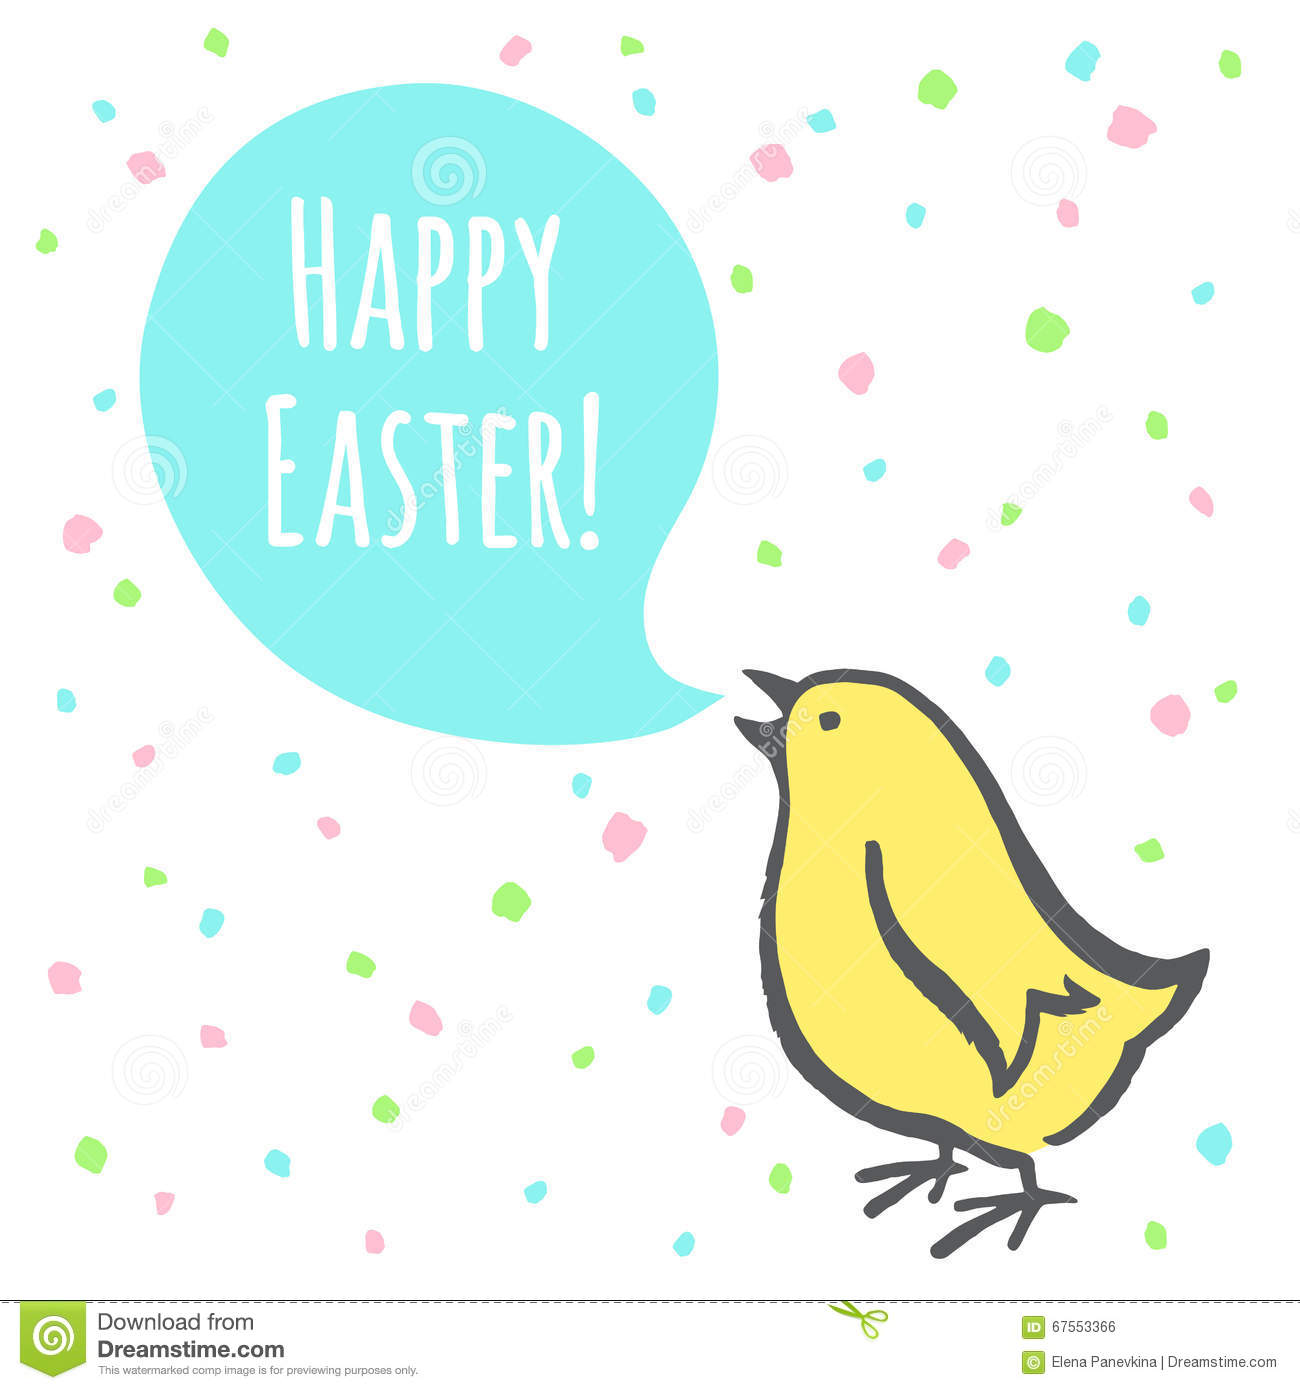 Simple Easter Illustration With Lettering Cute Free Hand Drawing Of Chick Speech Bubble Doodle Style Chicken Saying Happy